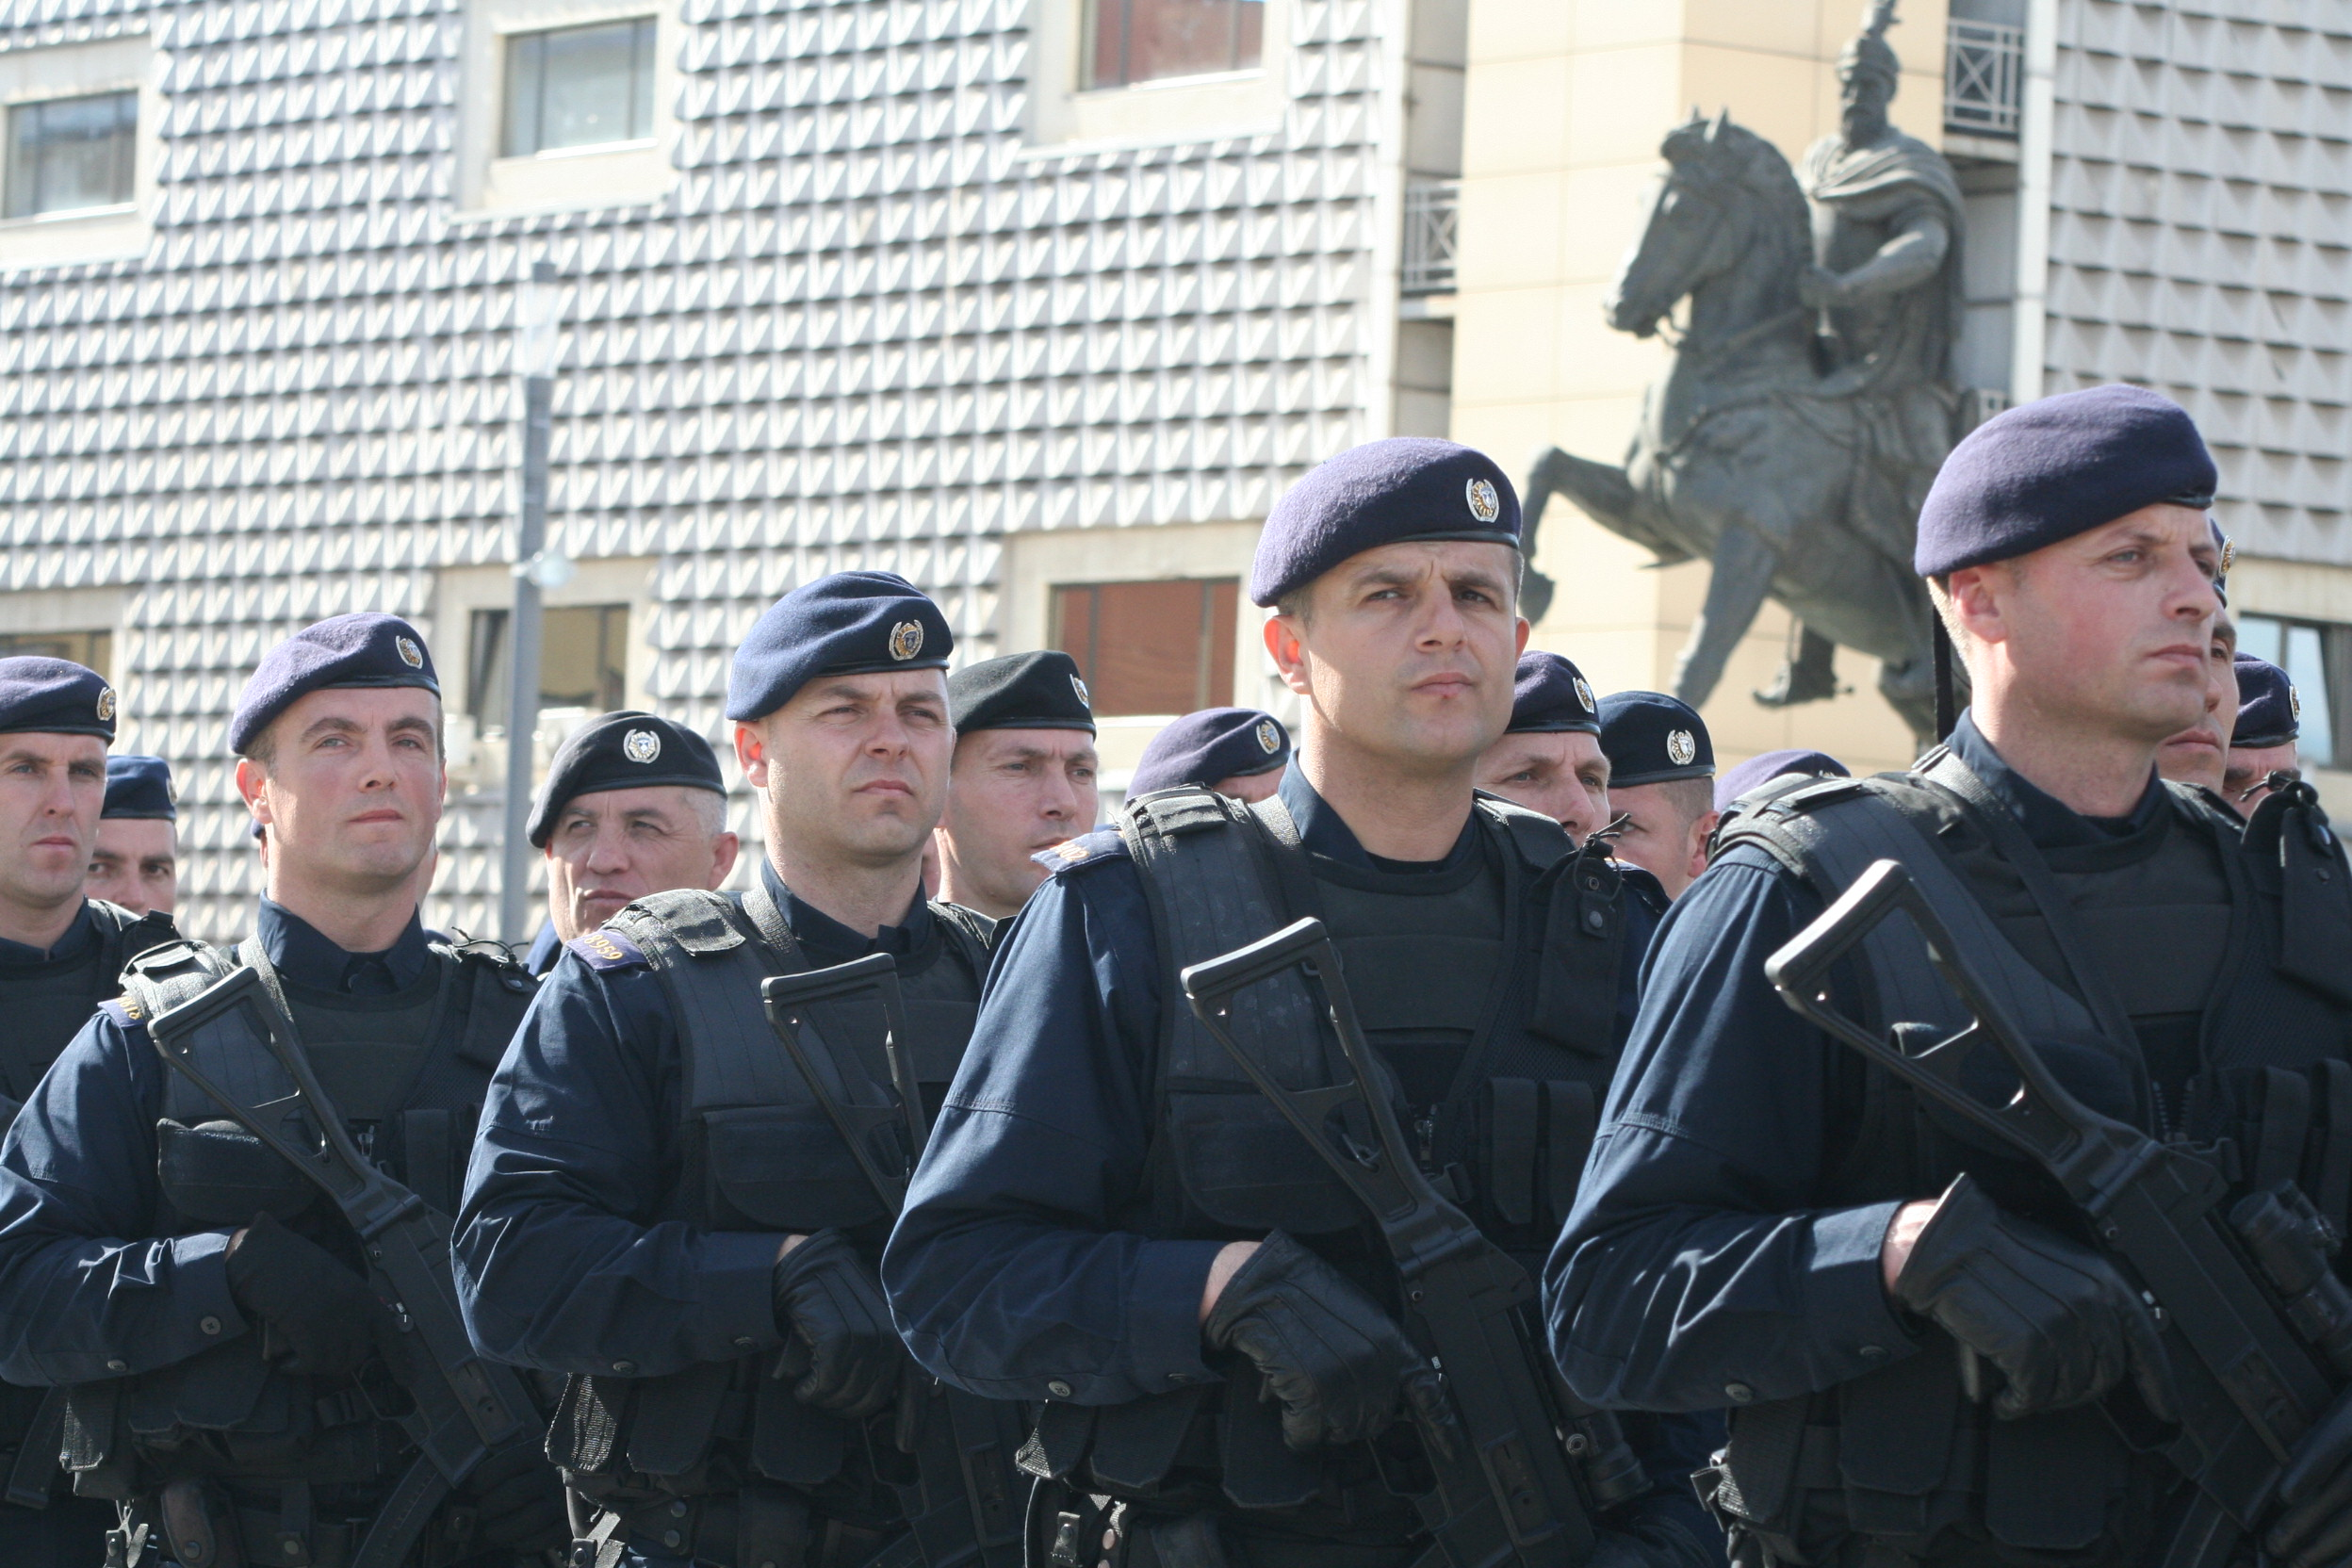 UN calls for release of staff after Kosovo police raid